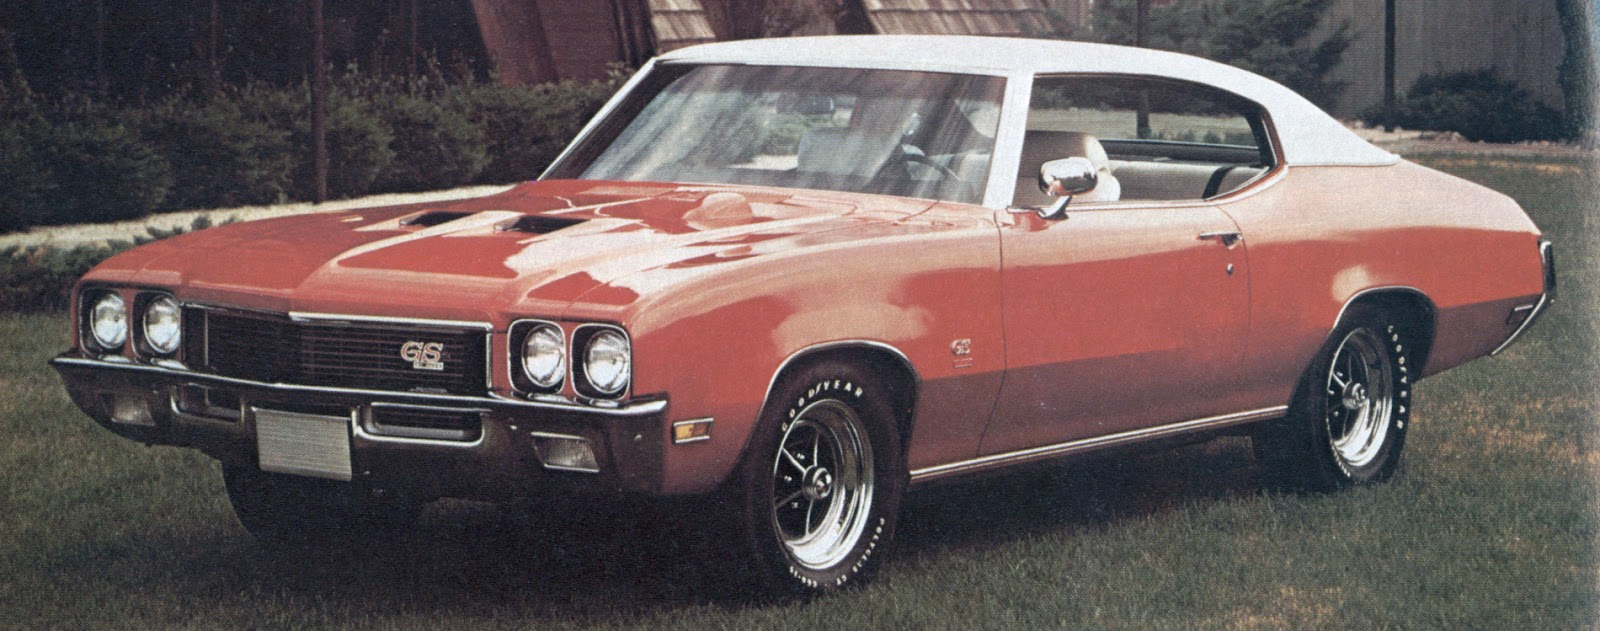 1972 buick skylark gs and stage 1 cars car care 1972 buick skylark gs and stage 1 cars sciox Image collections